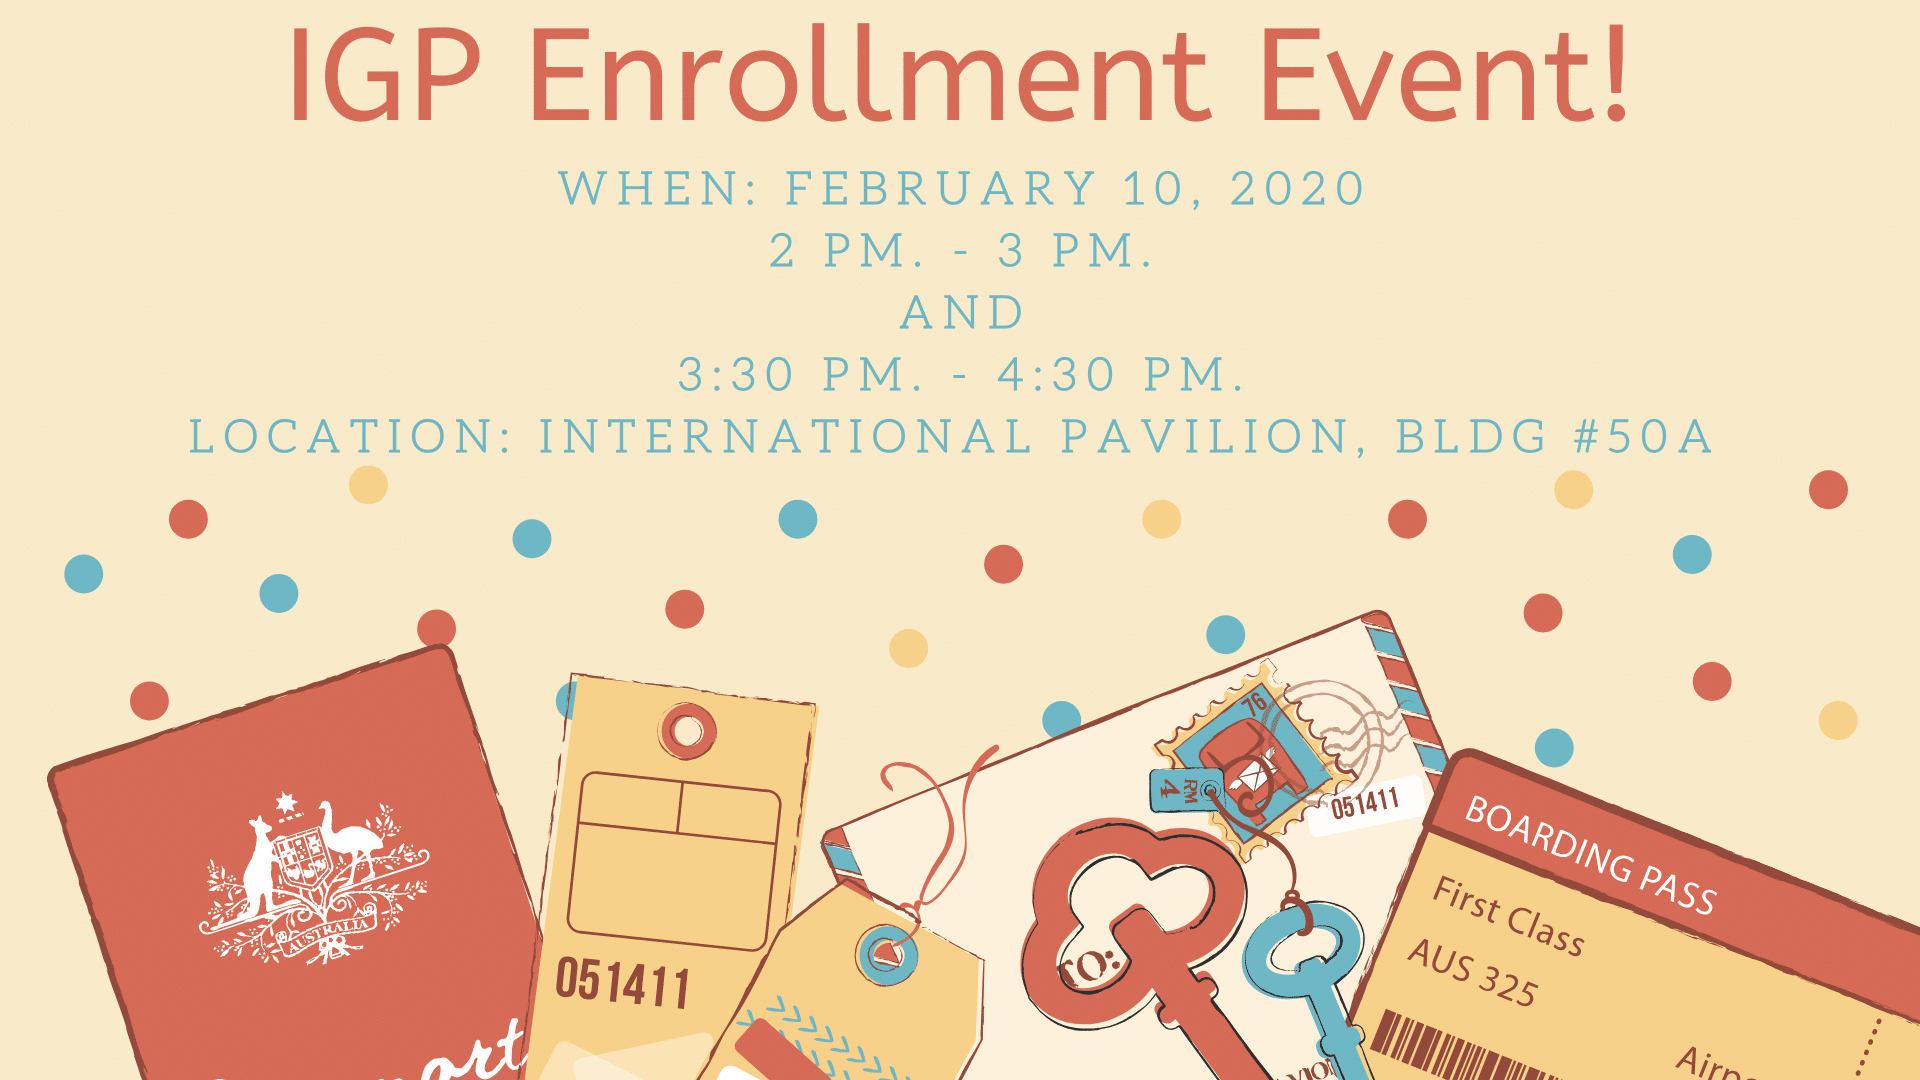 IGP Enrollment Event